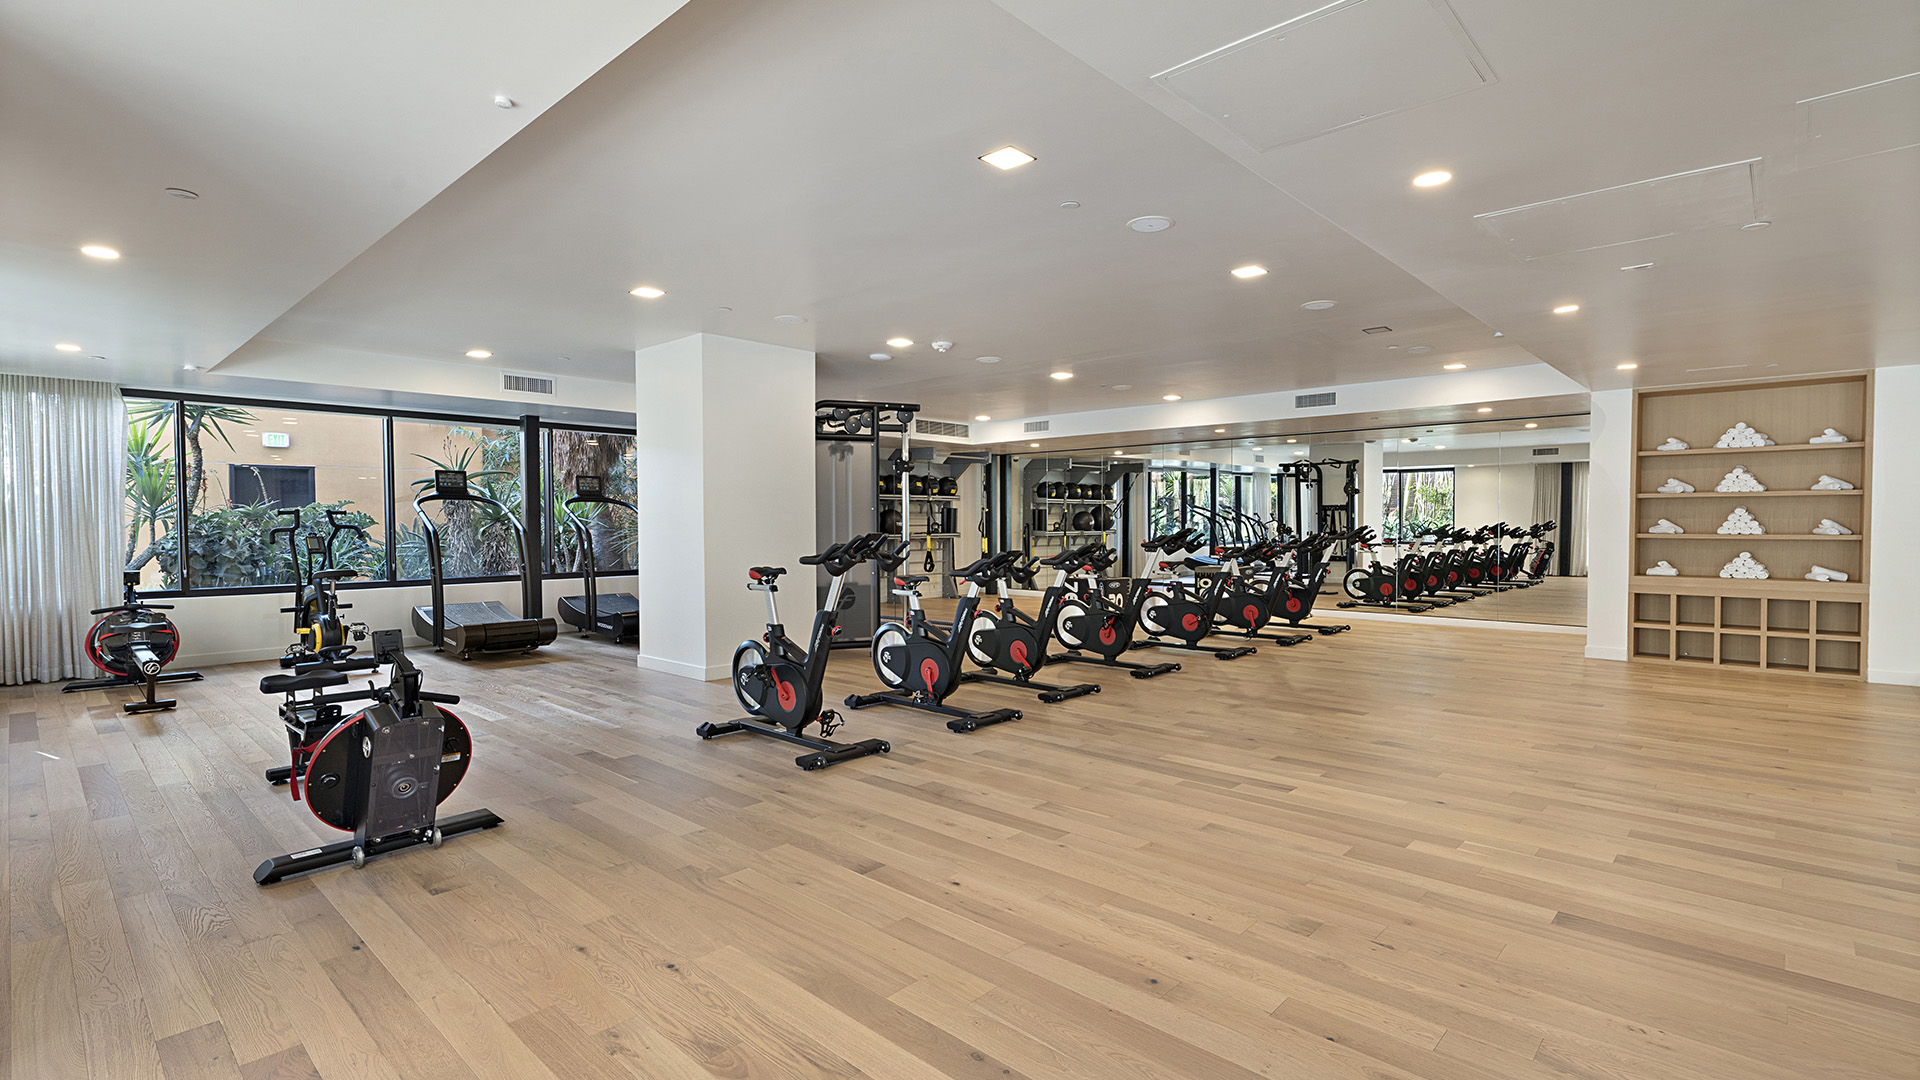 Yoga and spin room with light wood floors, mirror wall, rows of spin bikes, and open space for yoga.